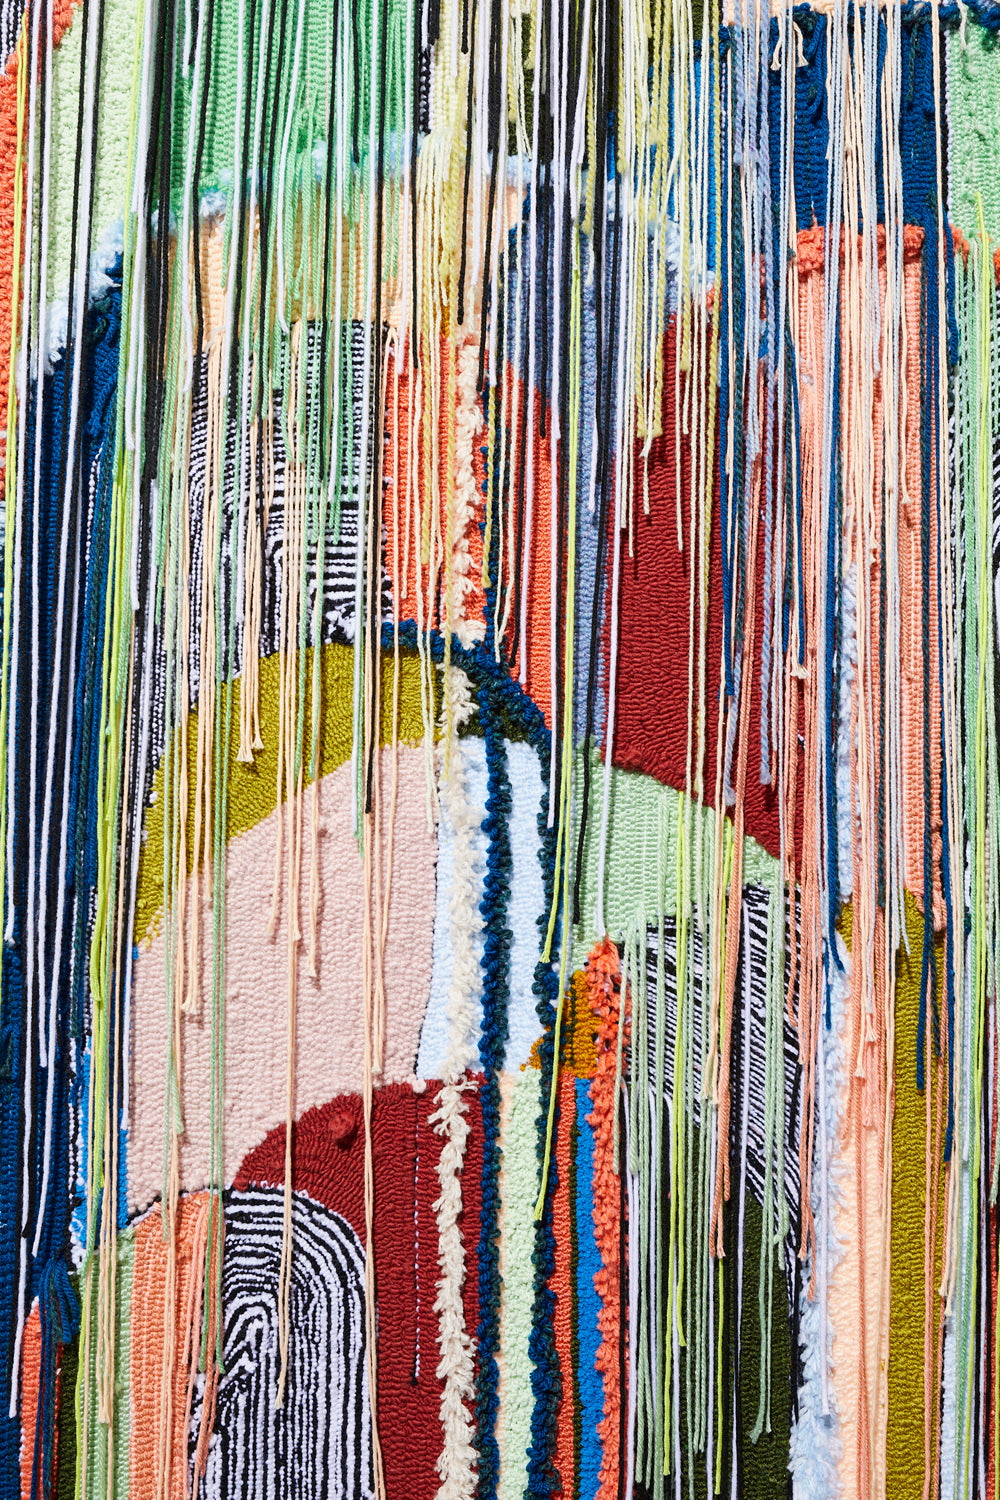 detail of The way in, Tufted fiber art by Trish Andersen